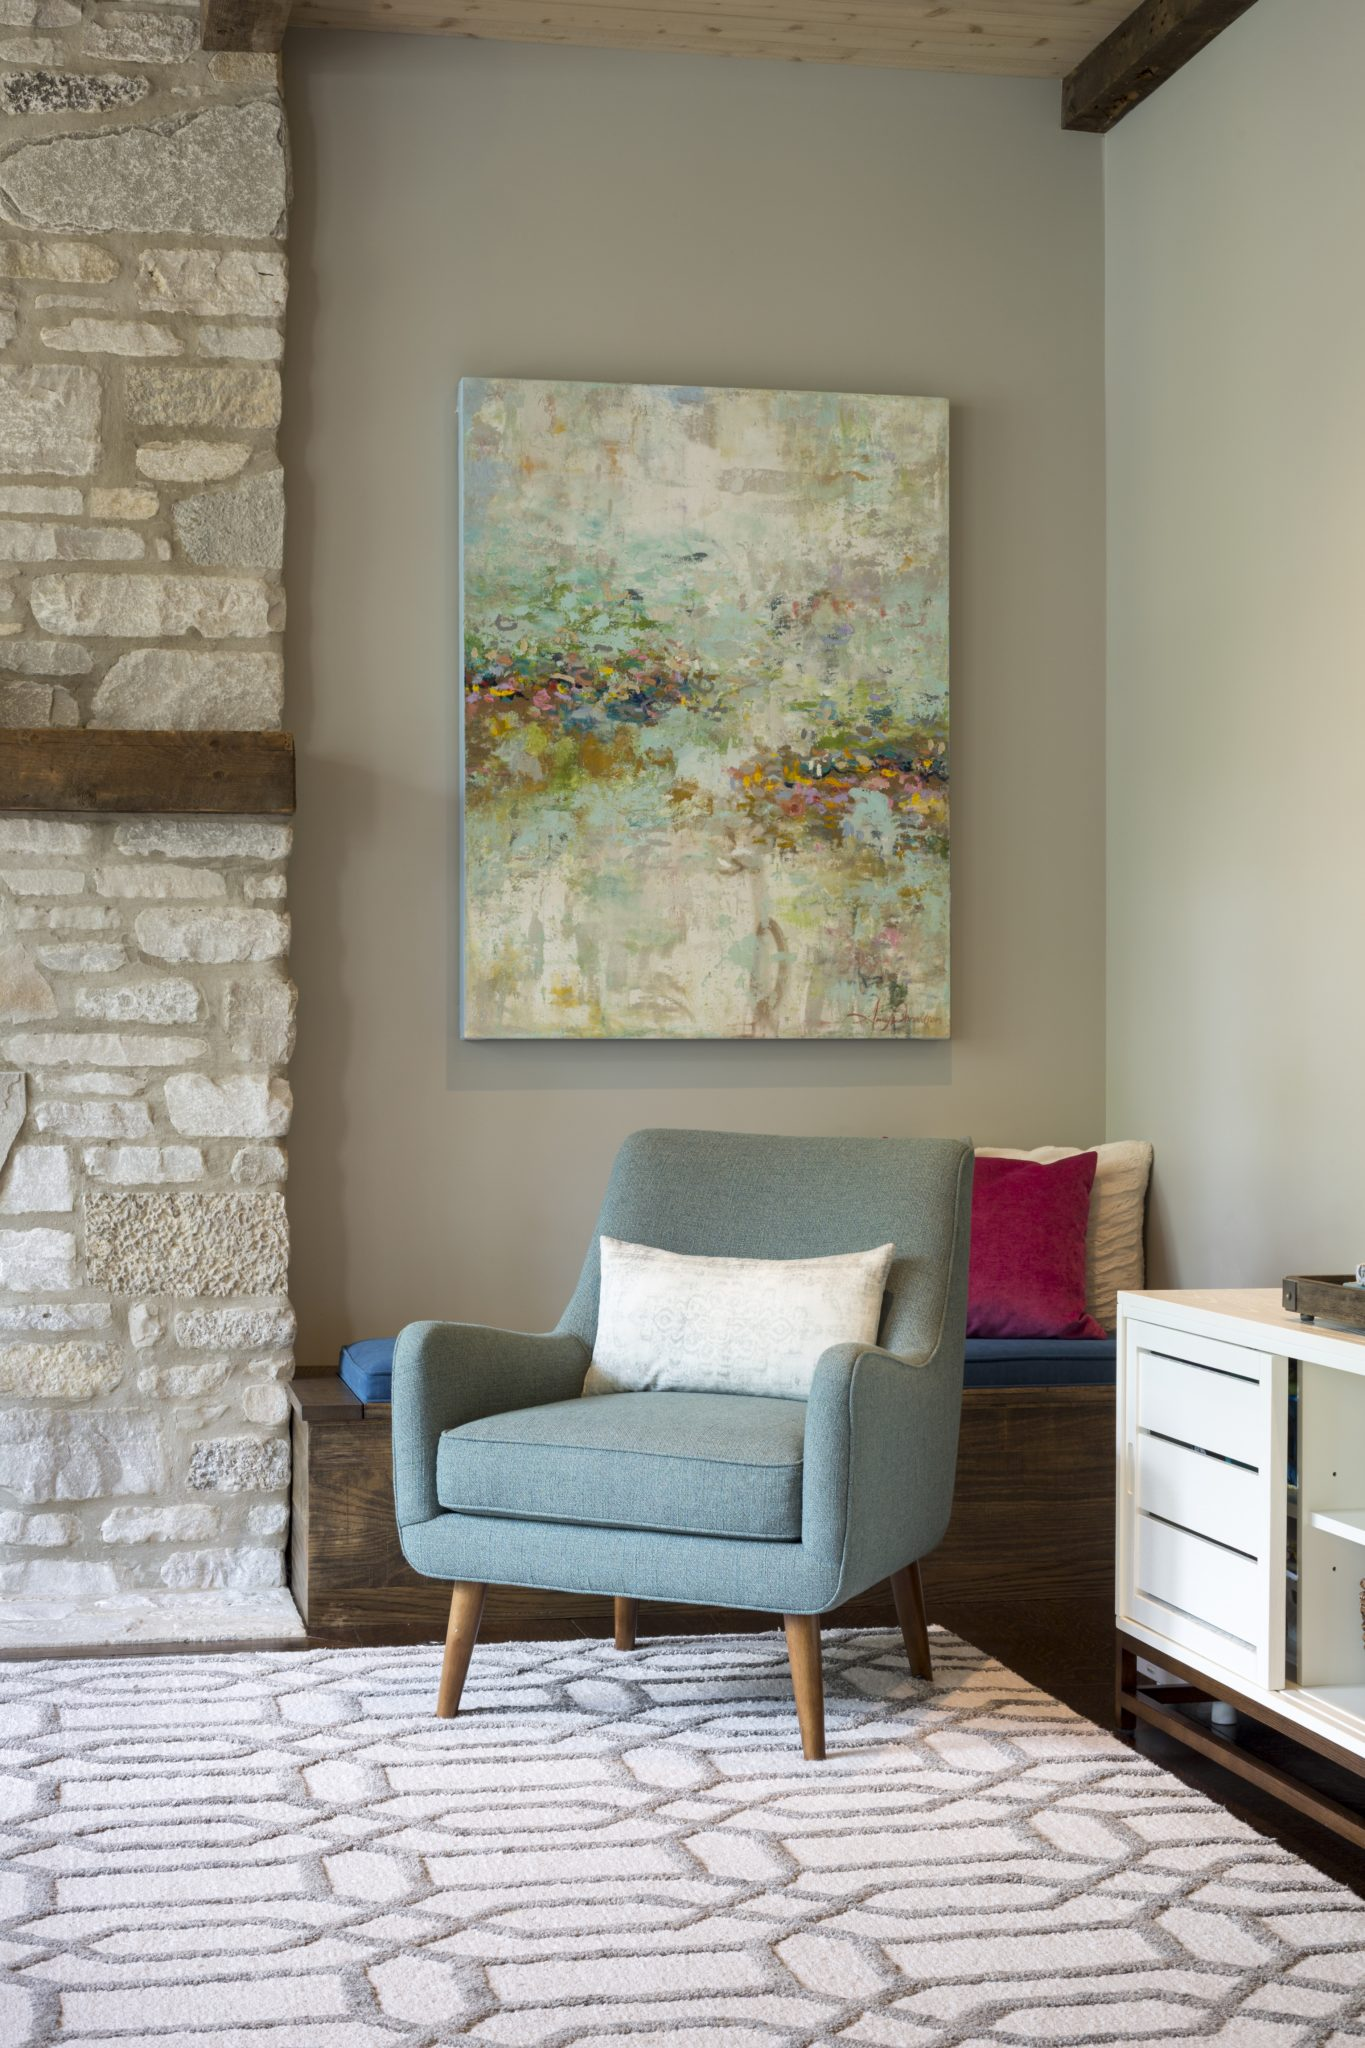 Hinsdale Rustic Modern by Mia Rao Design